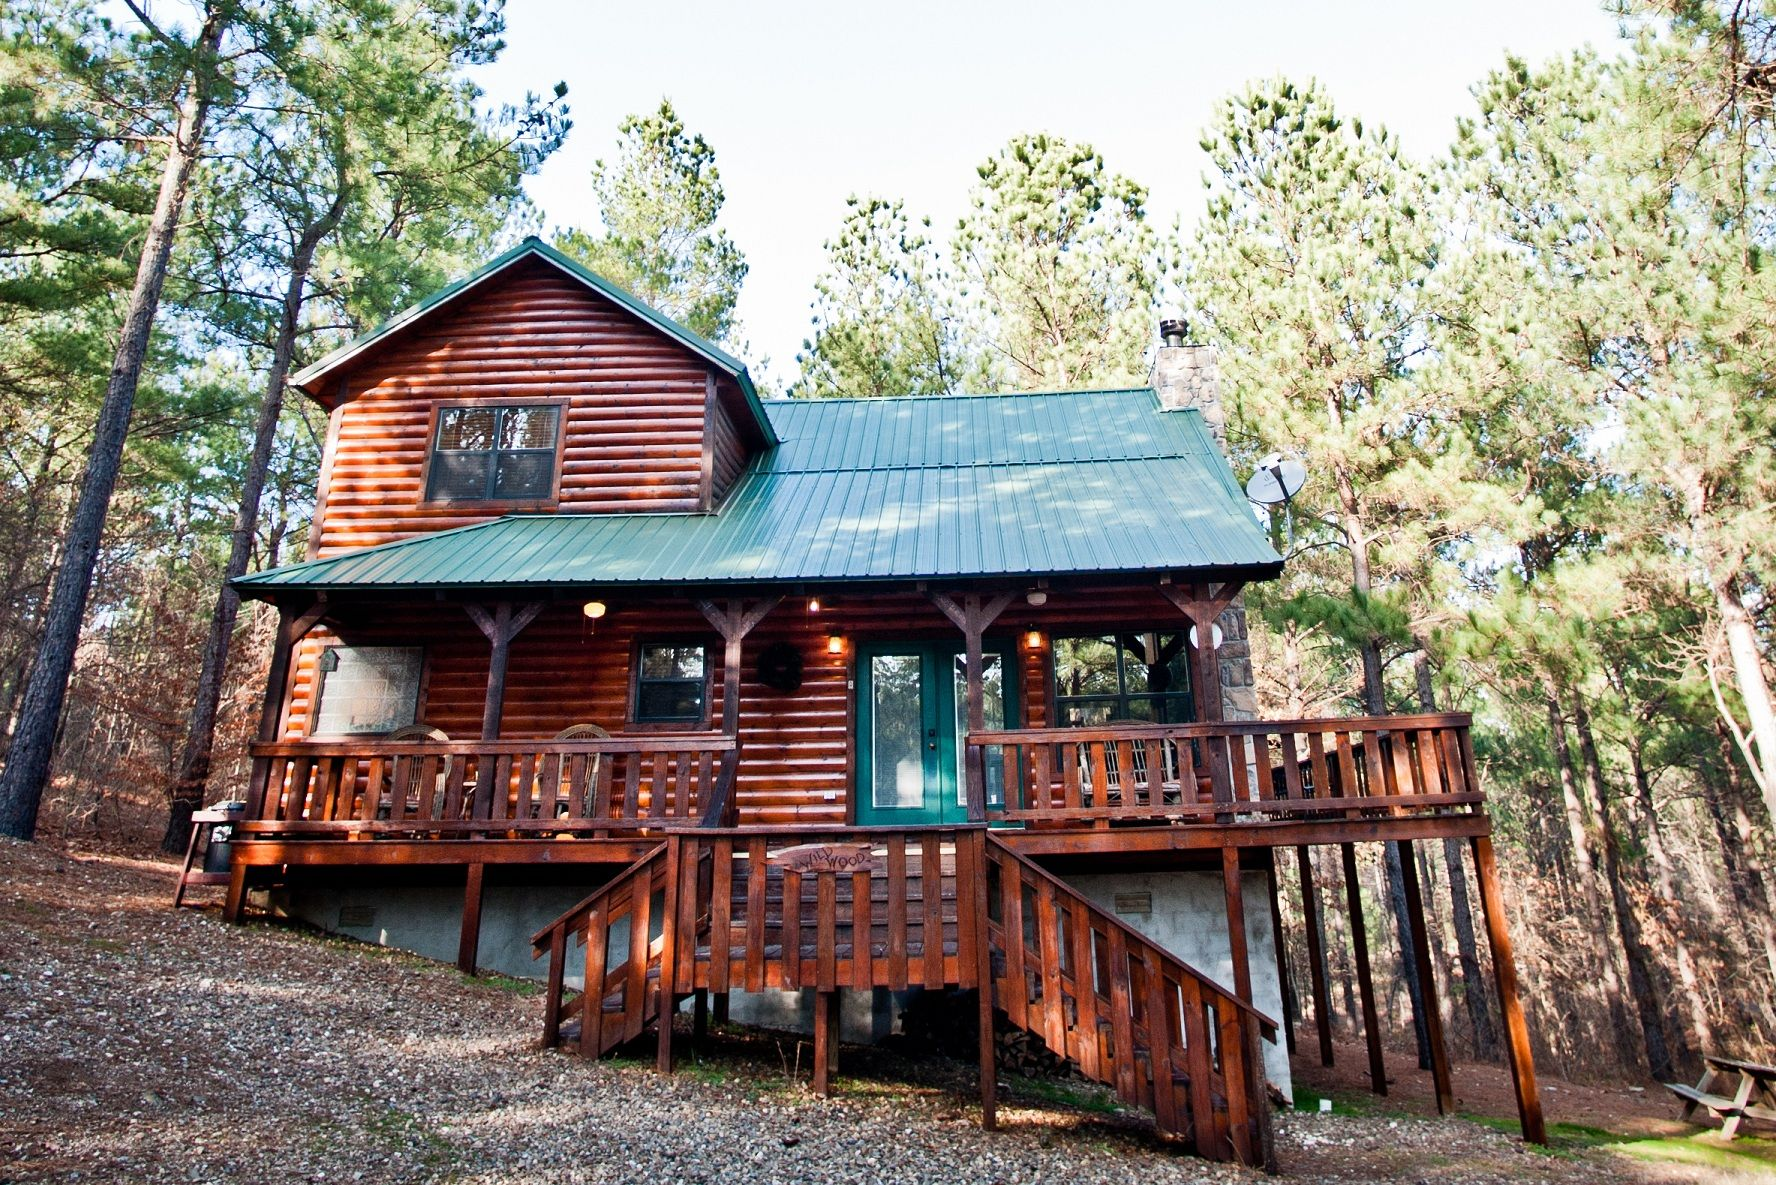 vacation mount cabins beaver treetoptango hochatown getaway fork bow bend runnin luxury cabin lake broken rentals gap blog moon beavers ouachita oklahoma river stephens